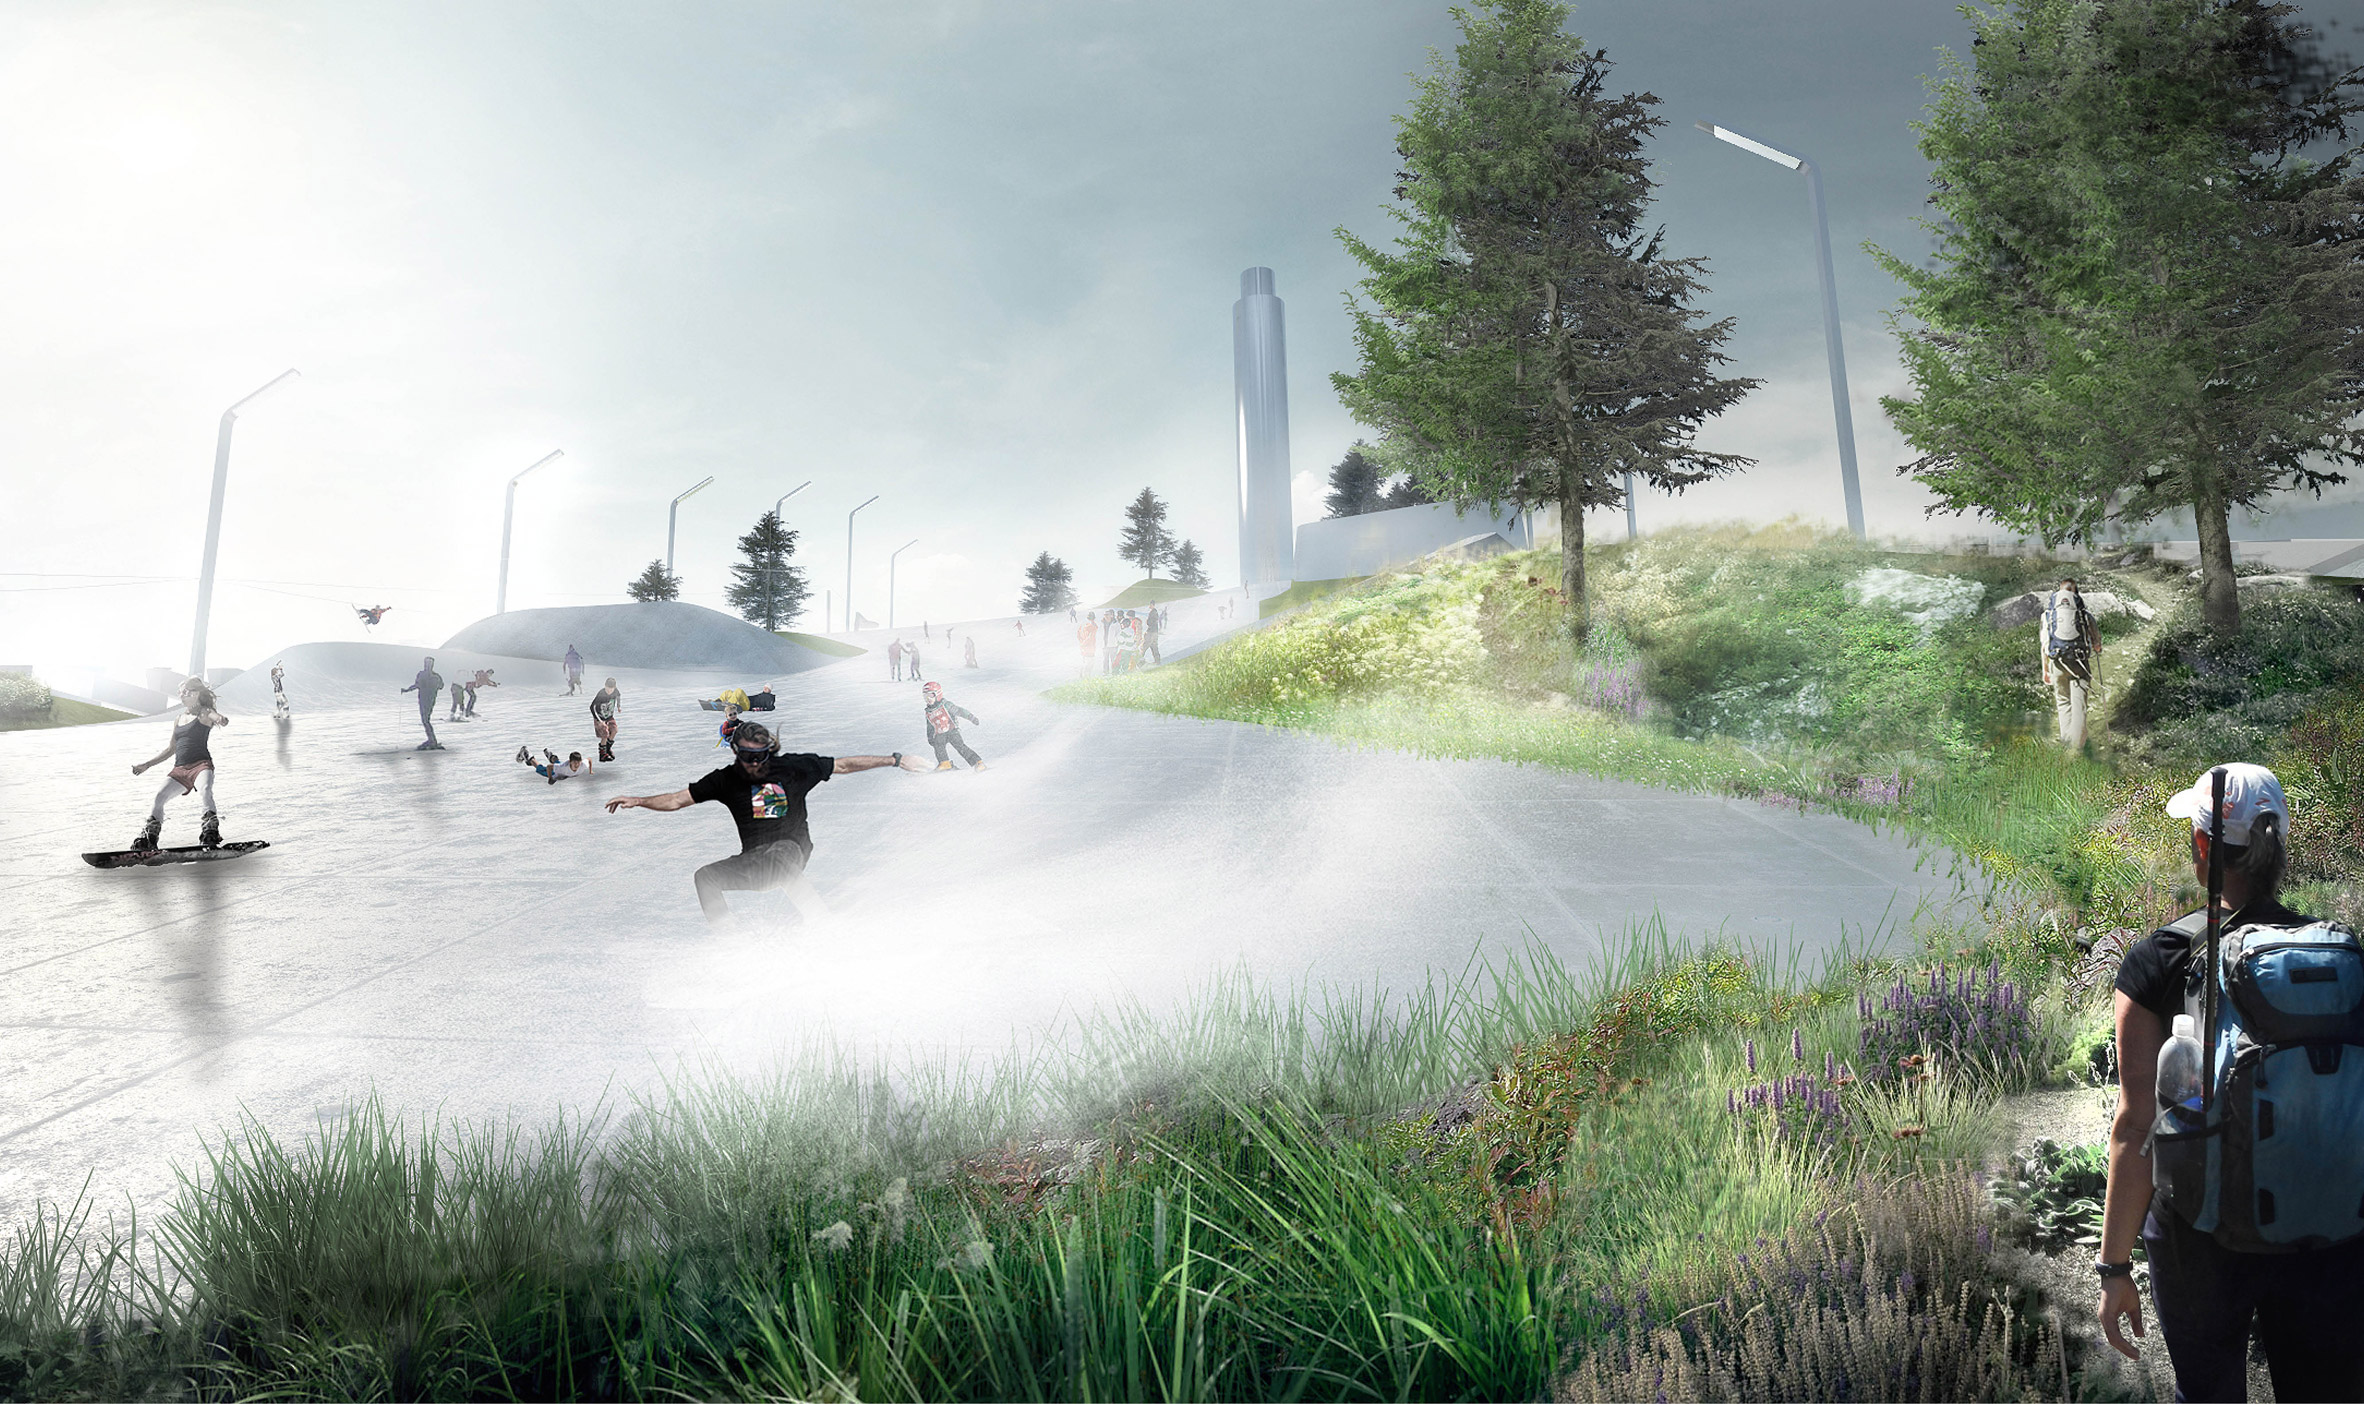 SLA Architects' ski park atop BIG's Copenhagen power plant to open this year